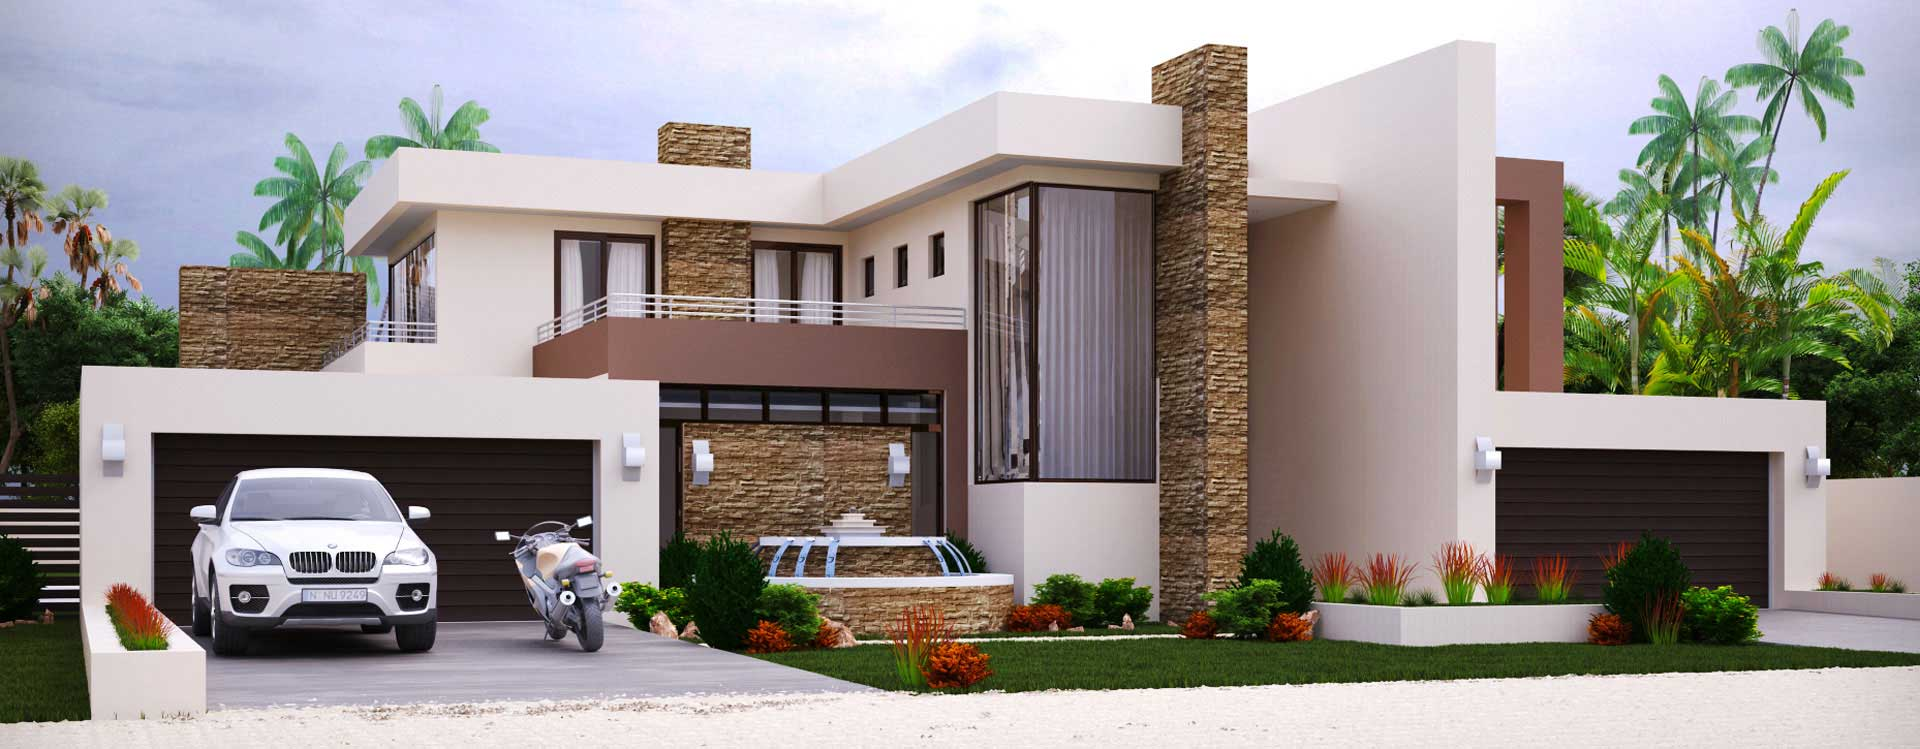 Modern home design with 4 bedrooms house plans - Single story 4 bedroom modern house plans ...